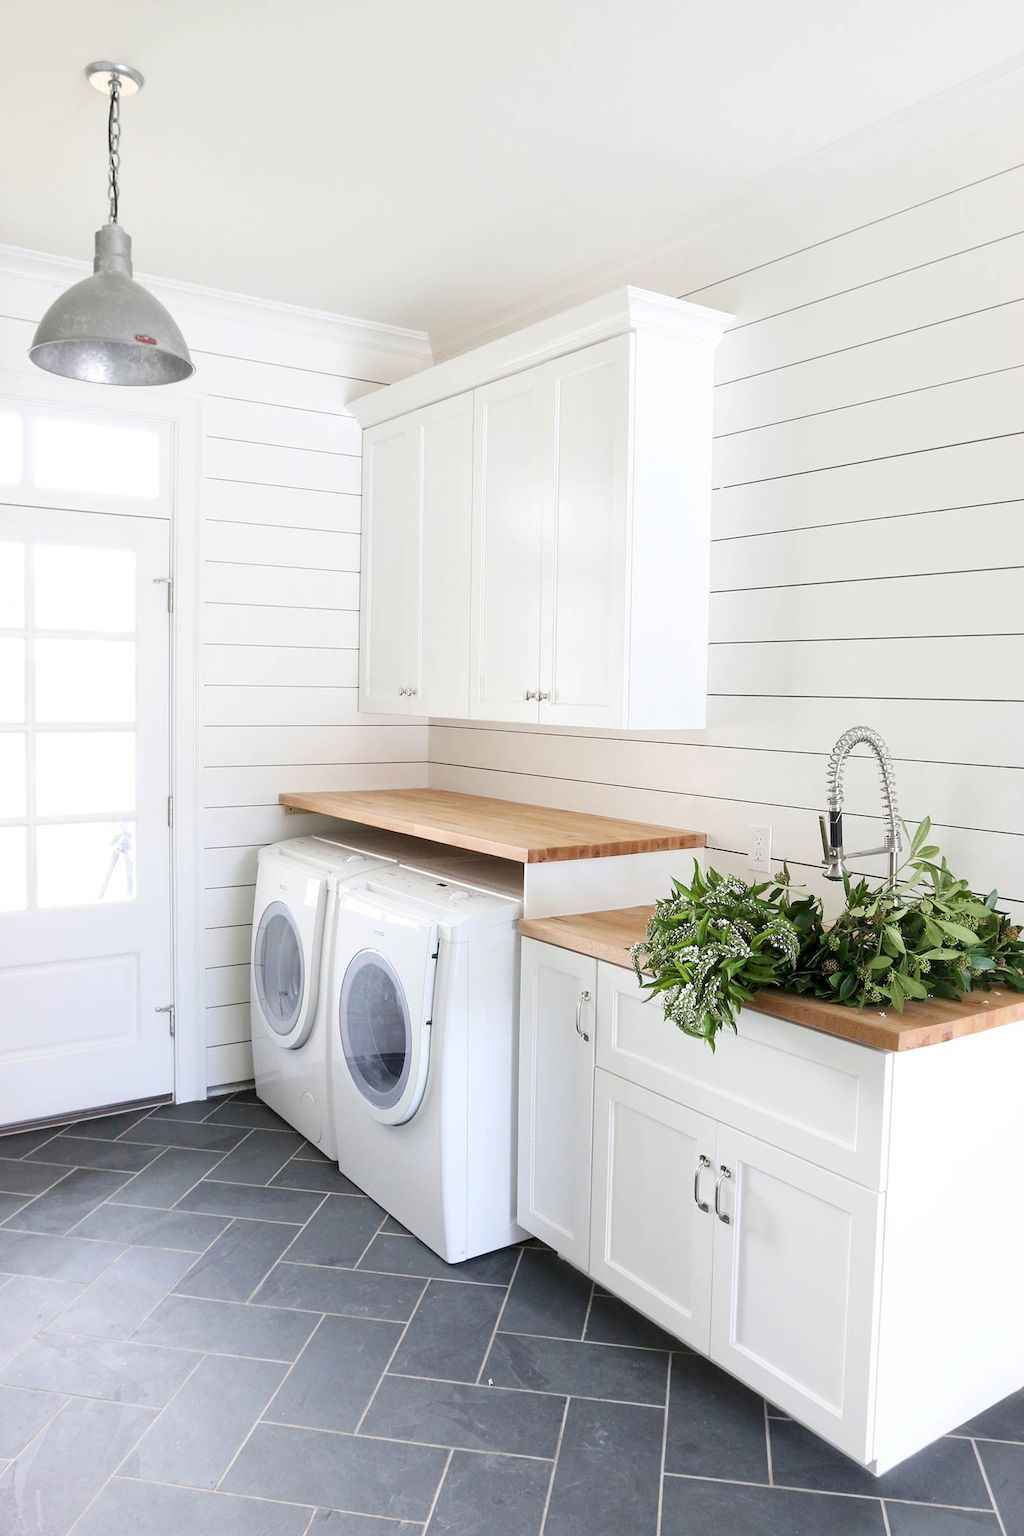 45 Rustic Farmhouse Laundry Room Design Ideas and Makeover (37)